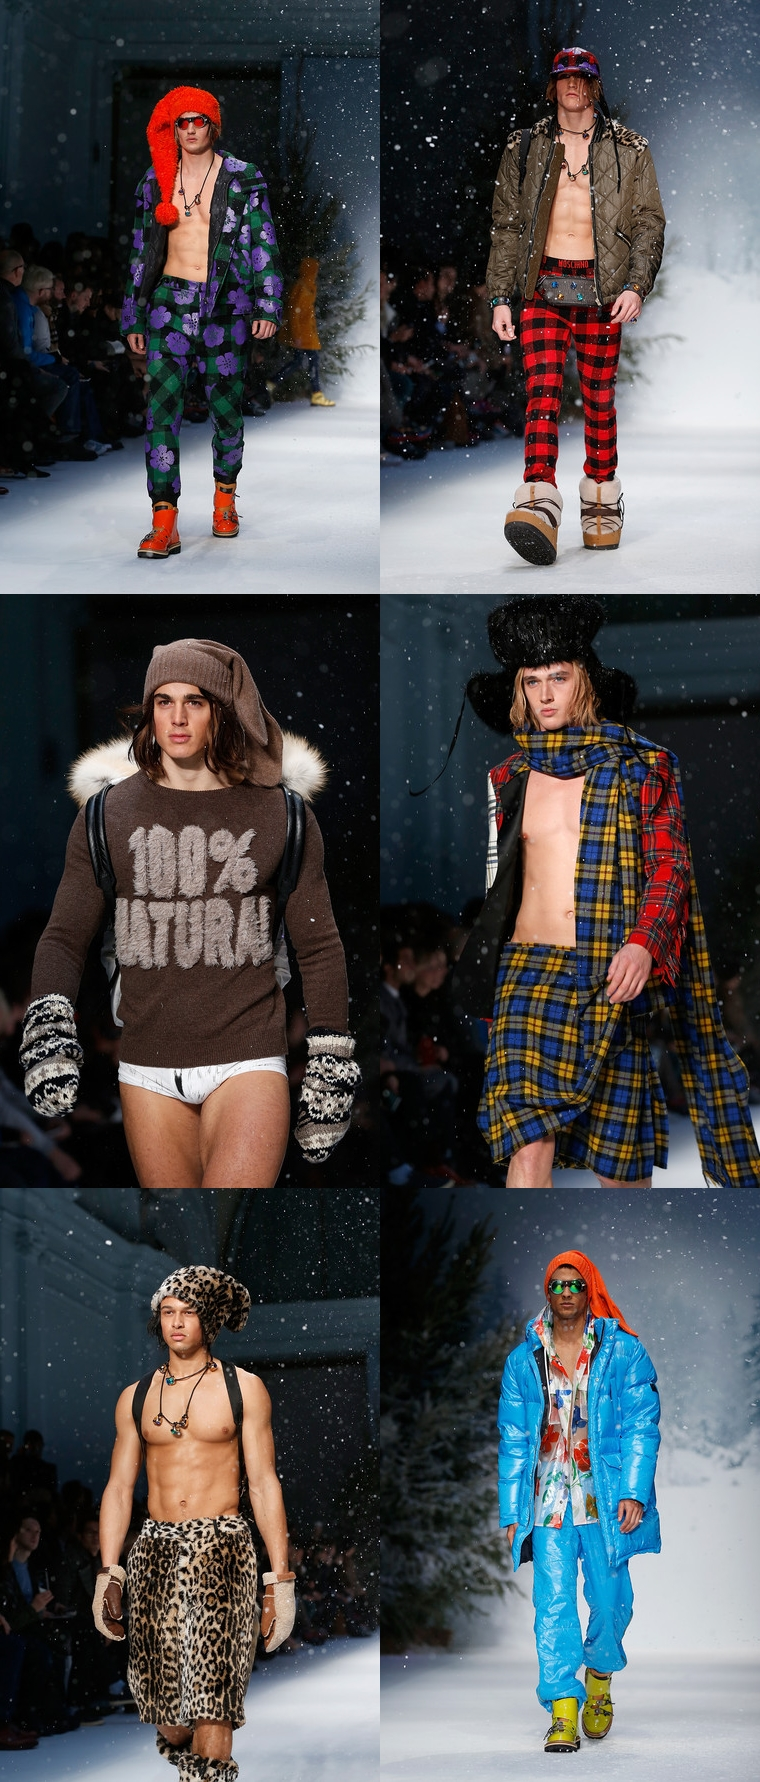 Moschino+Runway+London+Collections+Men+AW15+alex cursino, fashion blogger, moda sem censura, tendencia masculina, estilo masculino, moda masculina, fashion blogger, blogger, 4